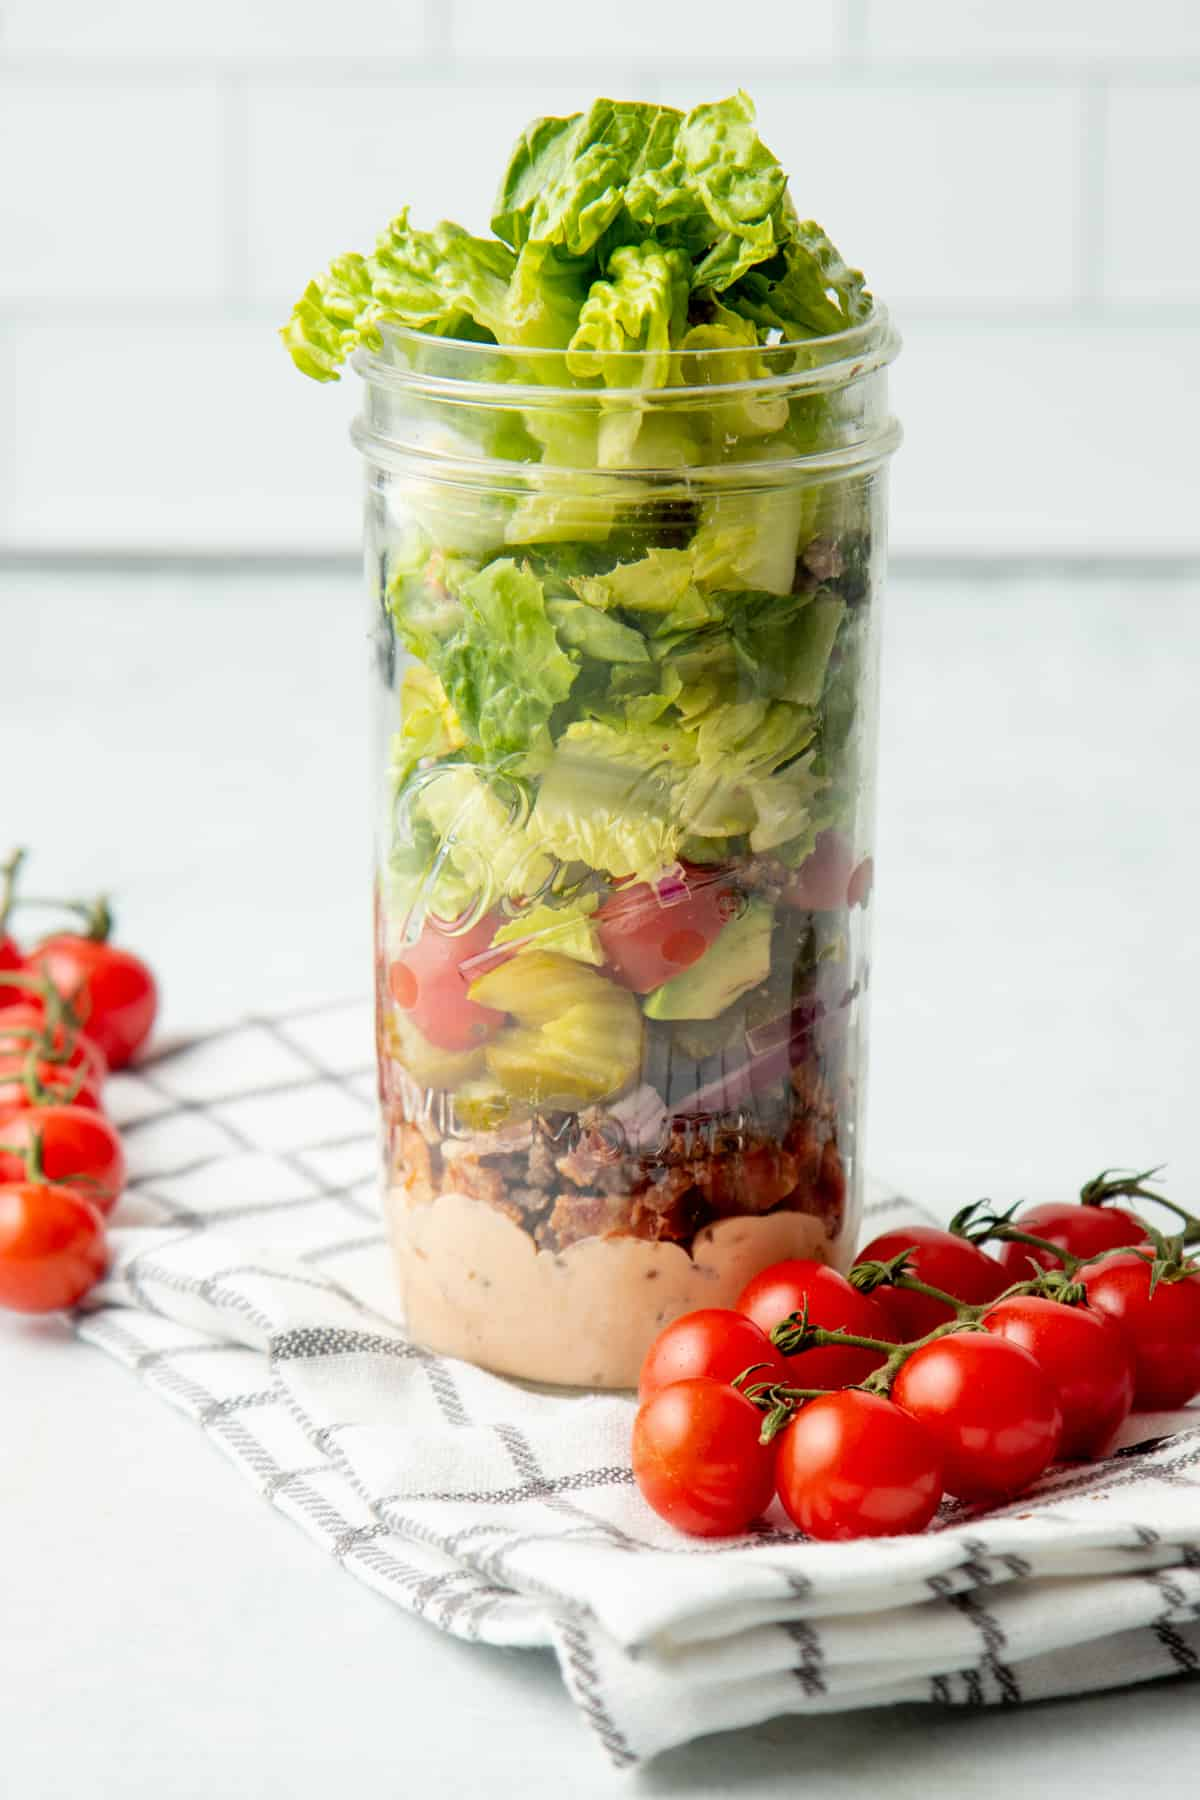 Ingredients for a burger bowl salad are layered in a wide-mouth mason jar